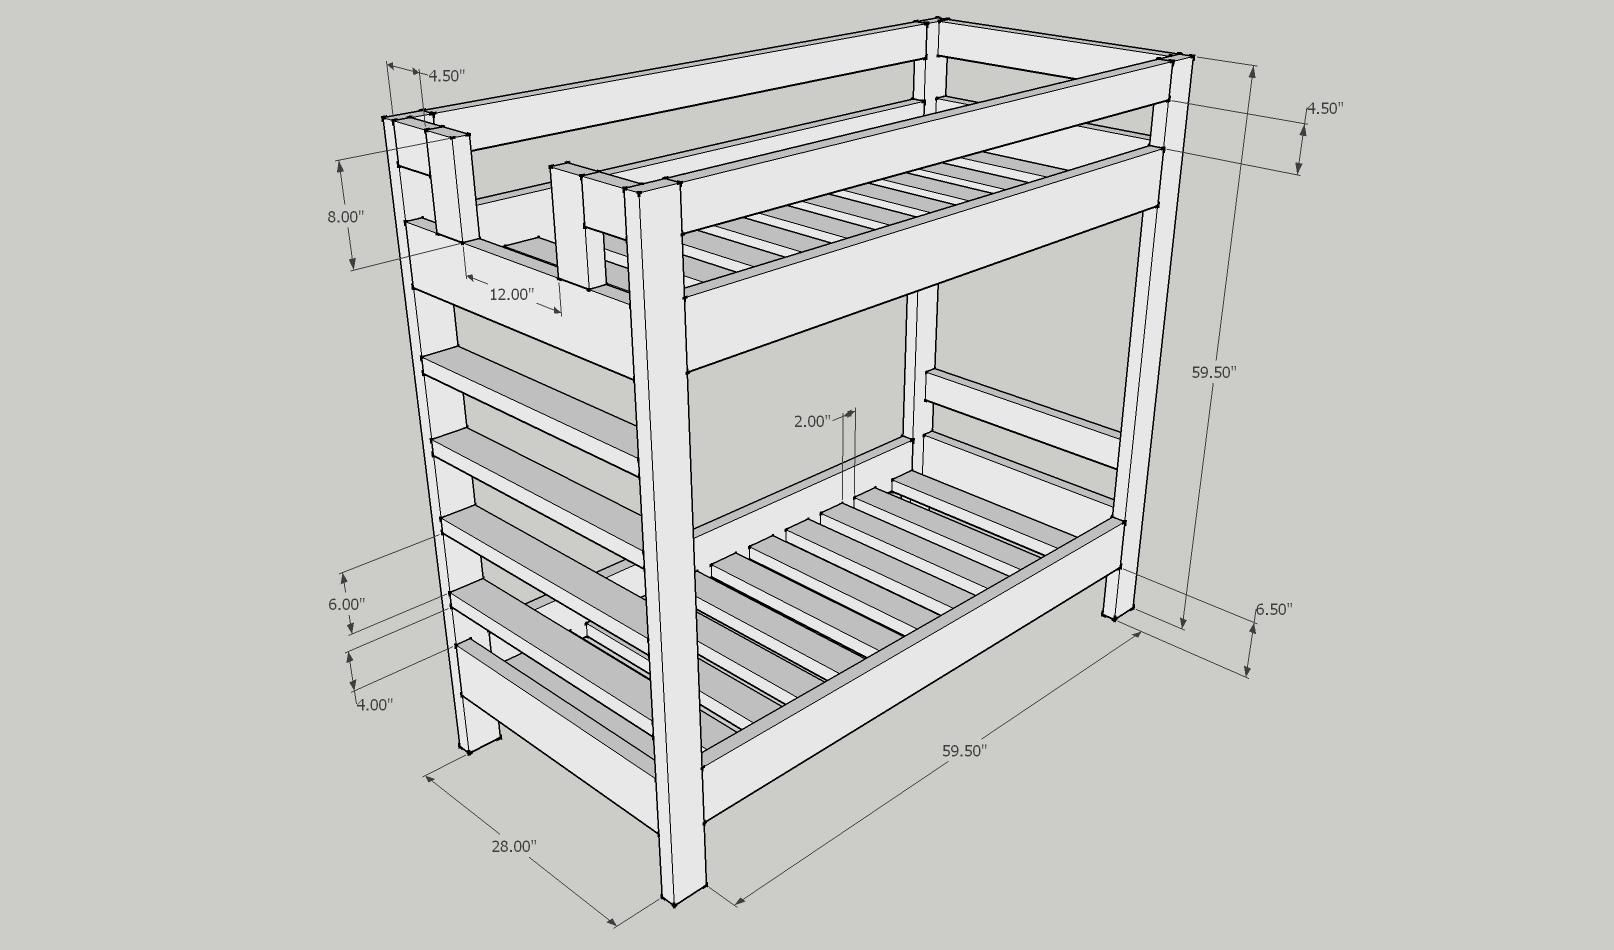 Free diy bunk bed plans kreg jig bunk bed plans kreg jig for Bunk bed woodworking plans